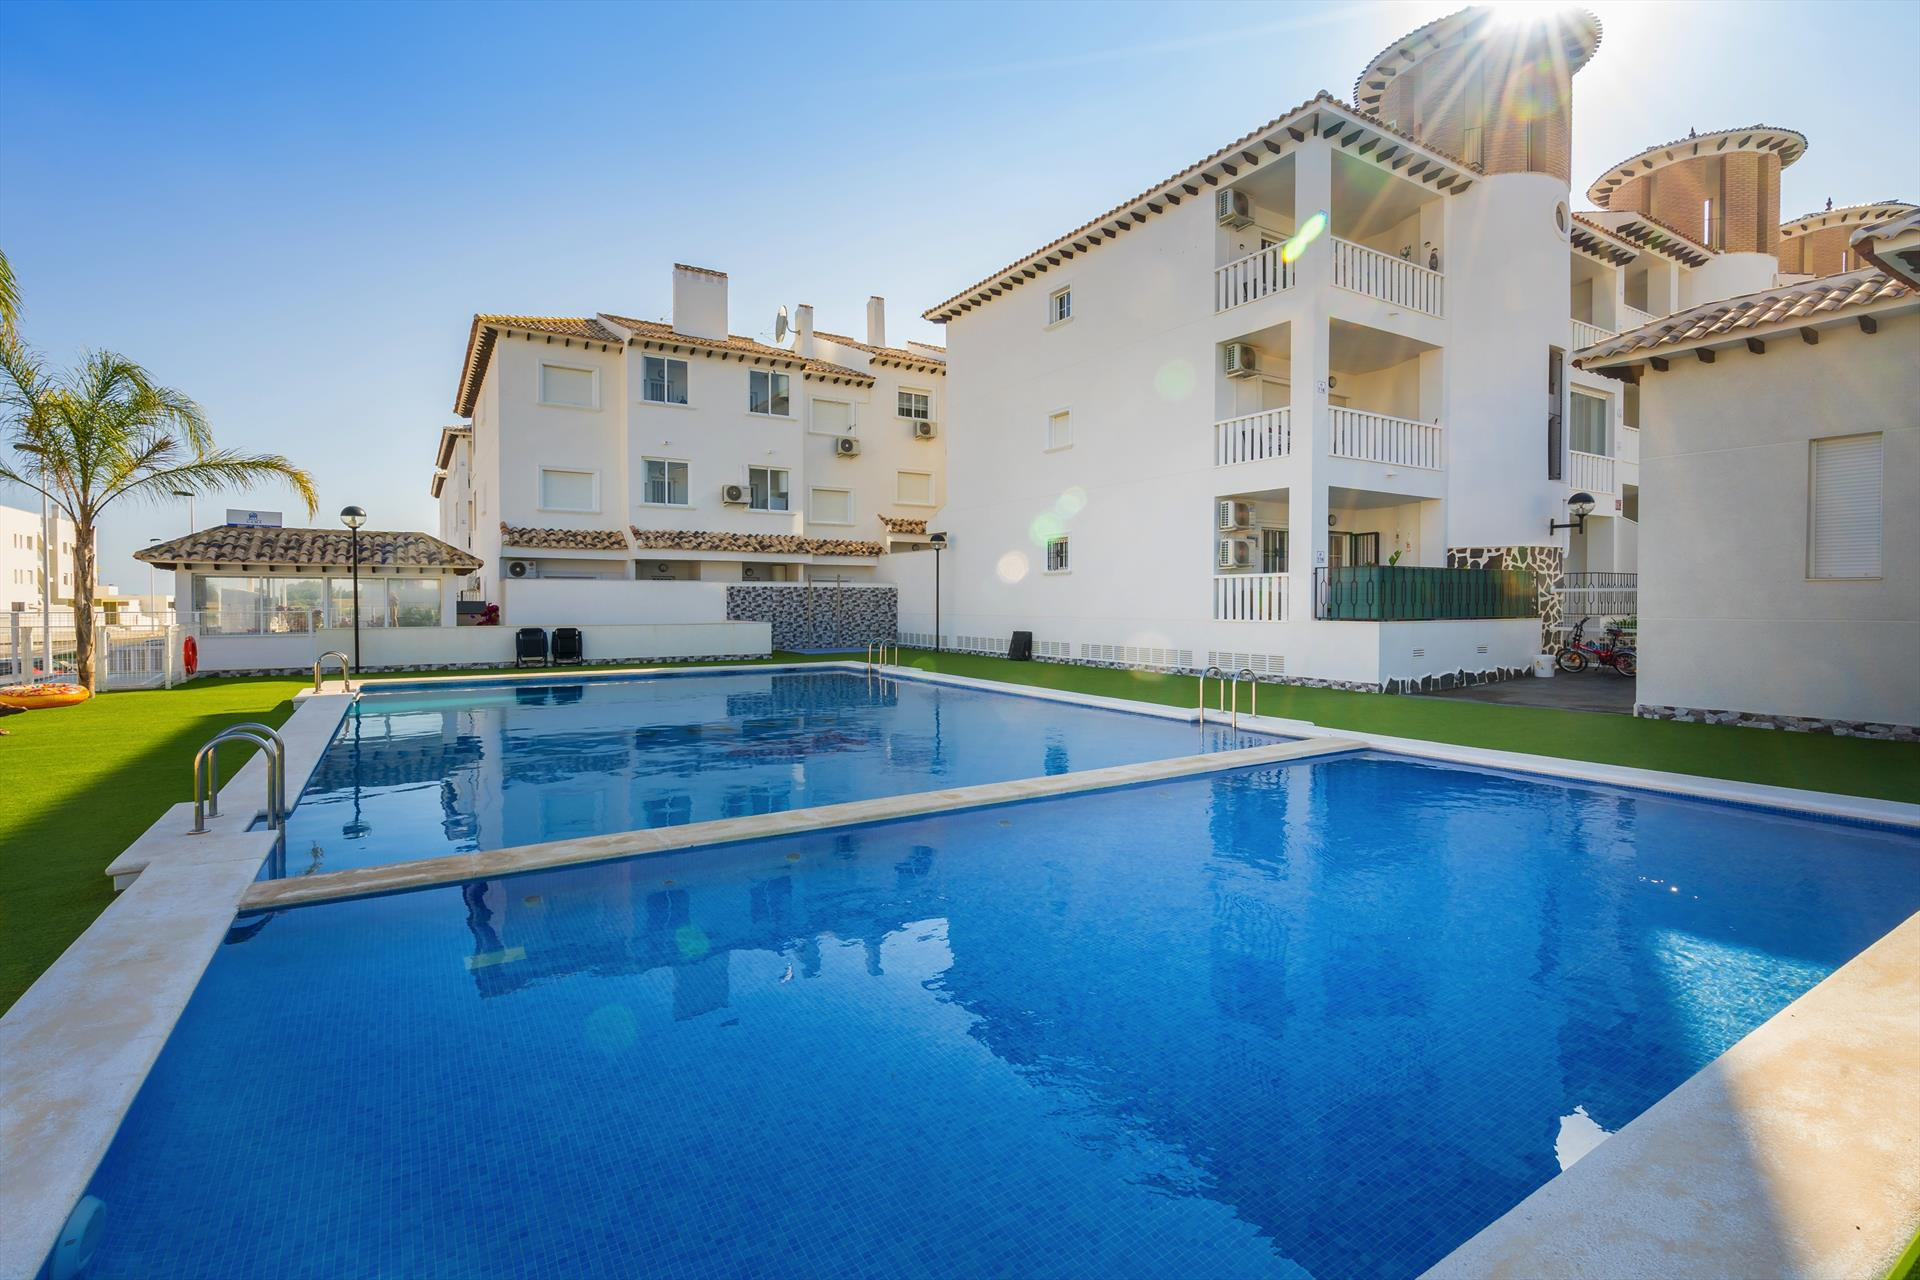 La Marina, Rustic apartment in La Marina-Elche, on the Costa Blanca, Spain for 4 persons.....